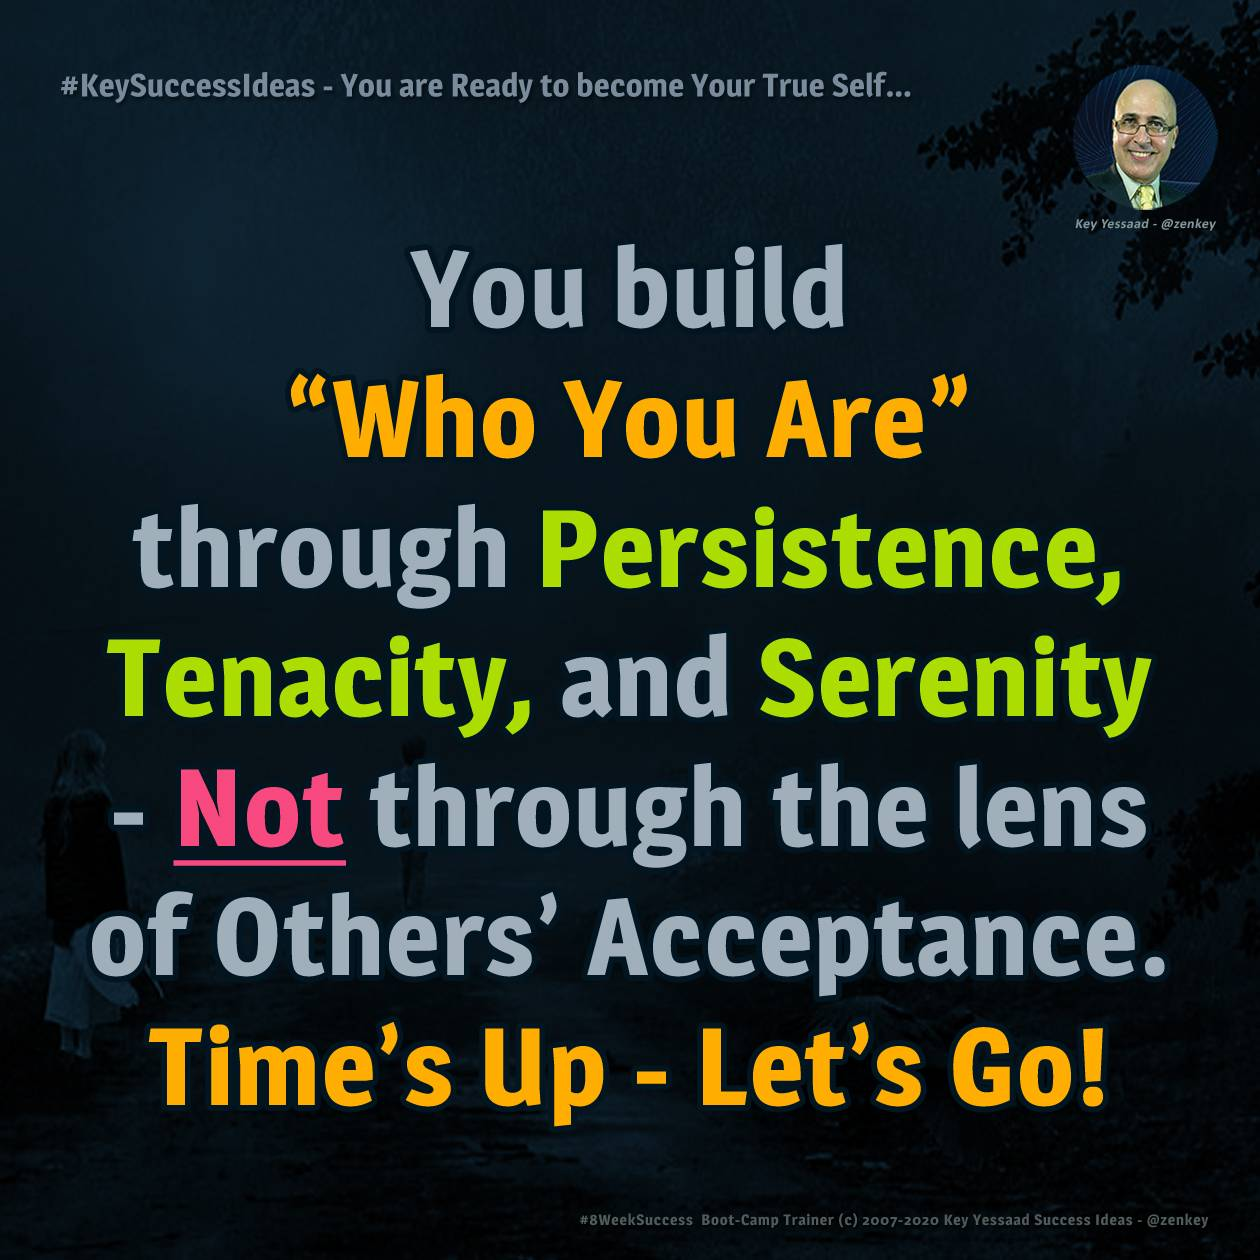 You are Ready to become Your True Self... - #KeySuccessIdeas